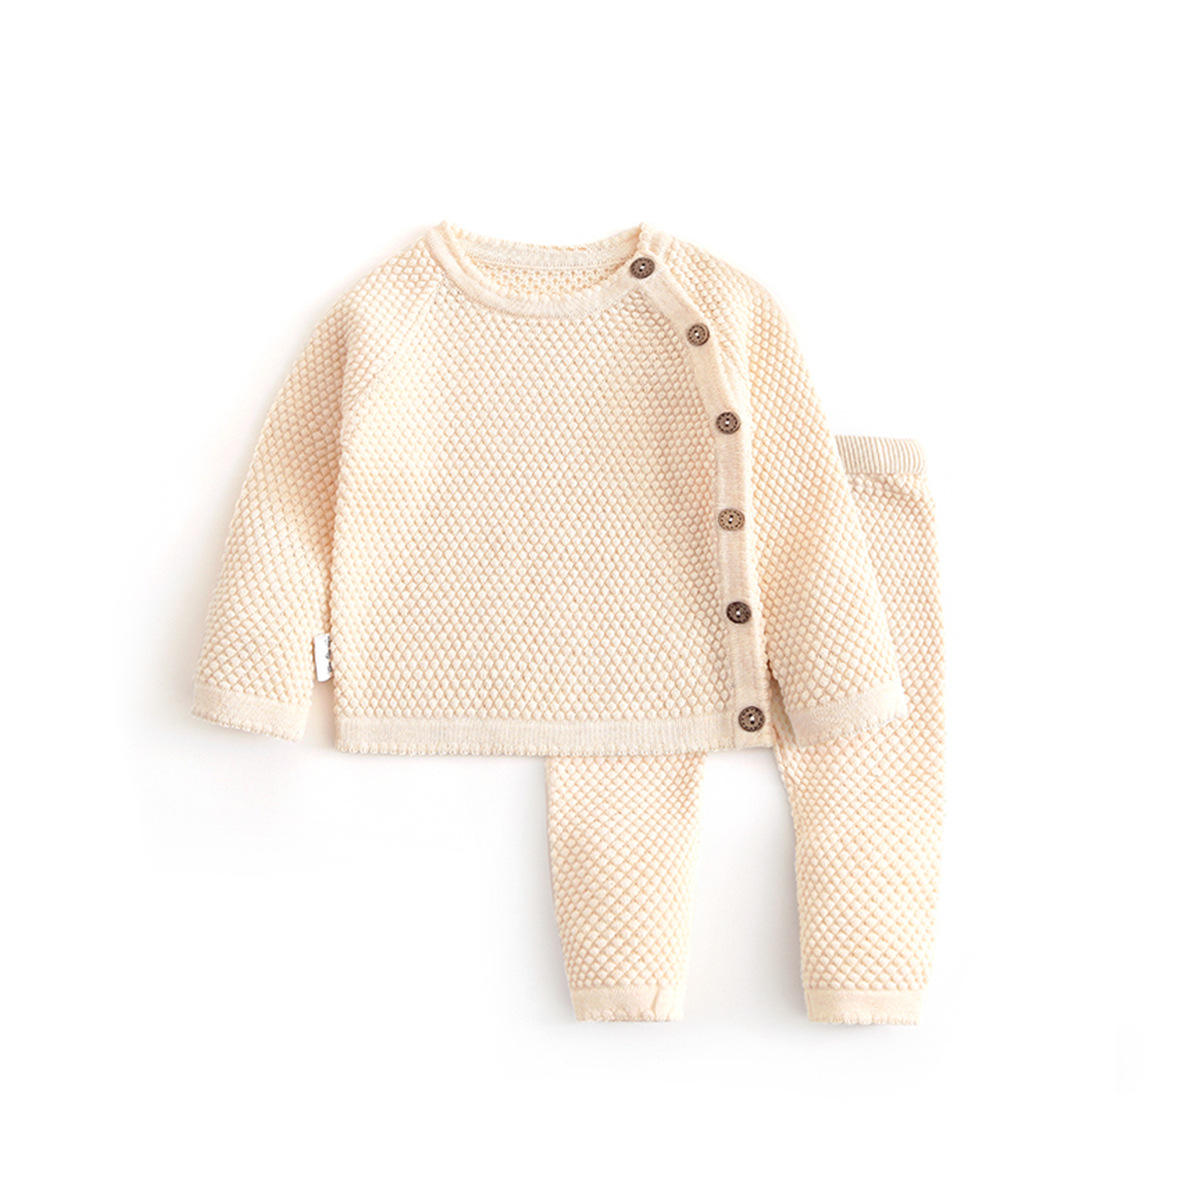 Spring Autumn Handmade Wool Sweaters Newborn Baby Knitted Tops Pants Set Outwear